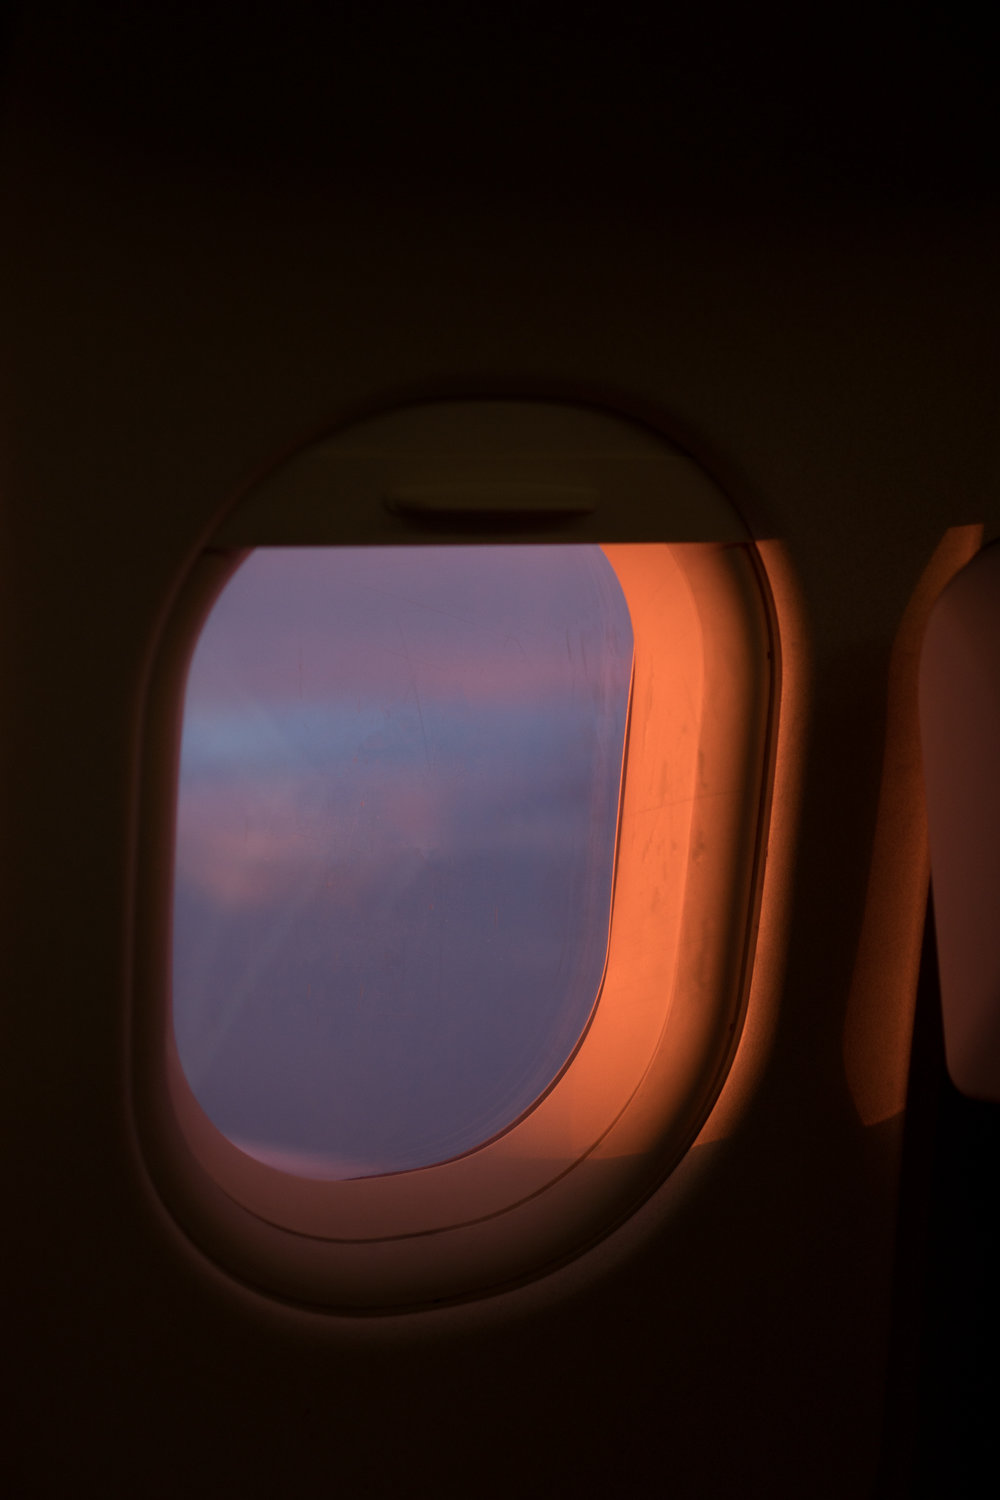 Sunset Airplane Window View. Photograph by Sarah Natsumi Moore